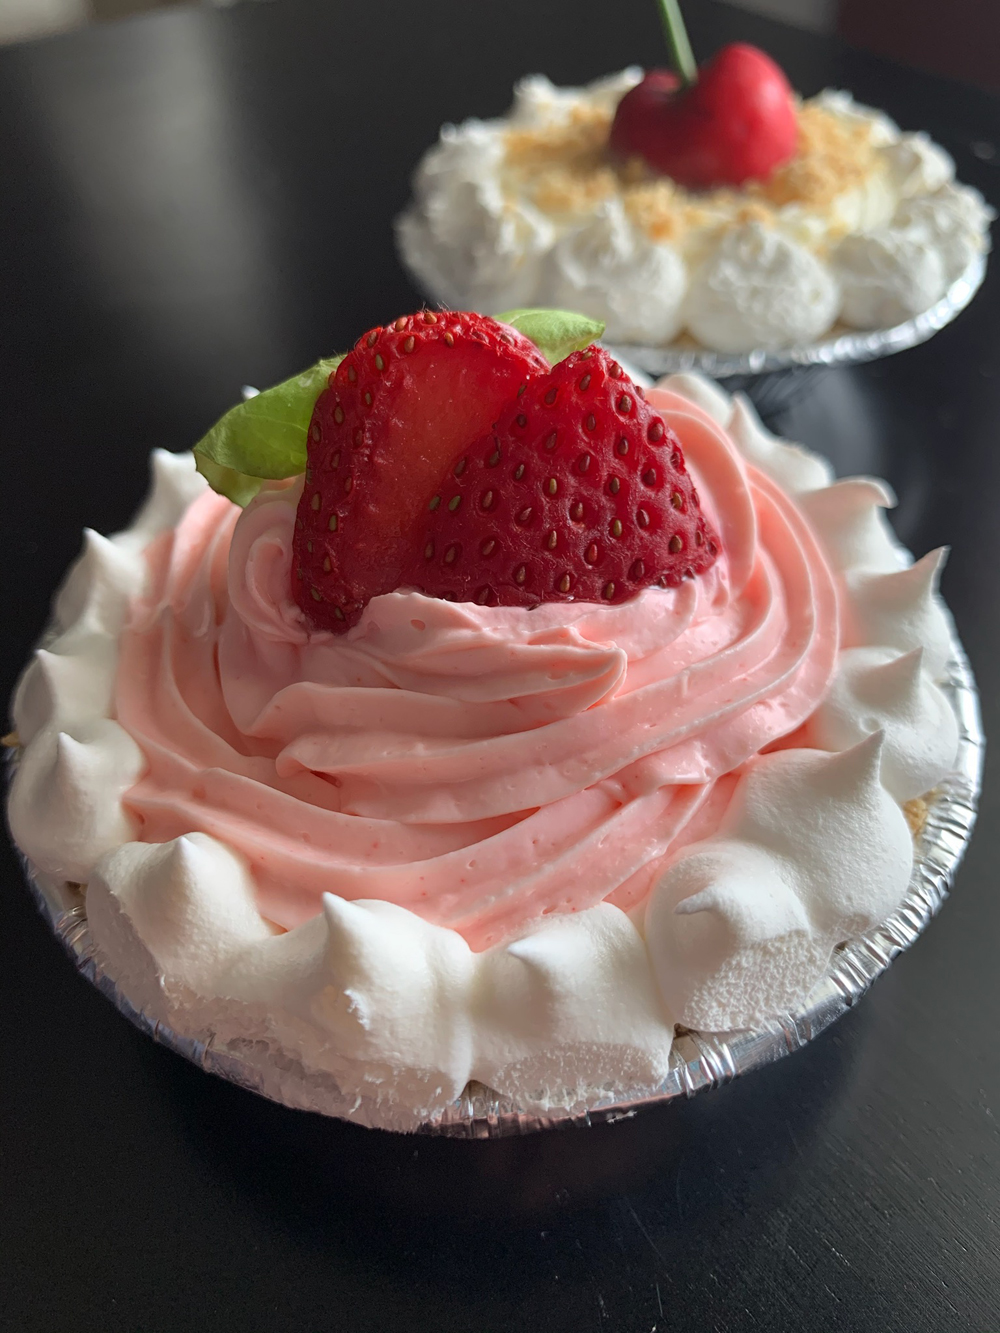 Strawberry No Bake Cheesecake Dessert